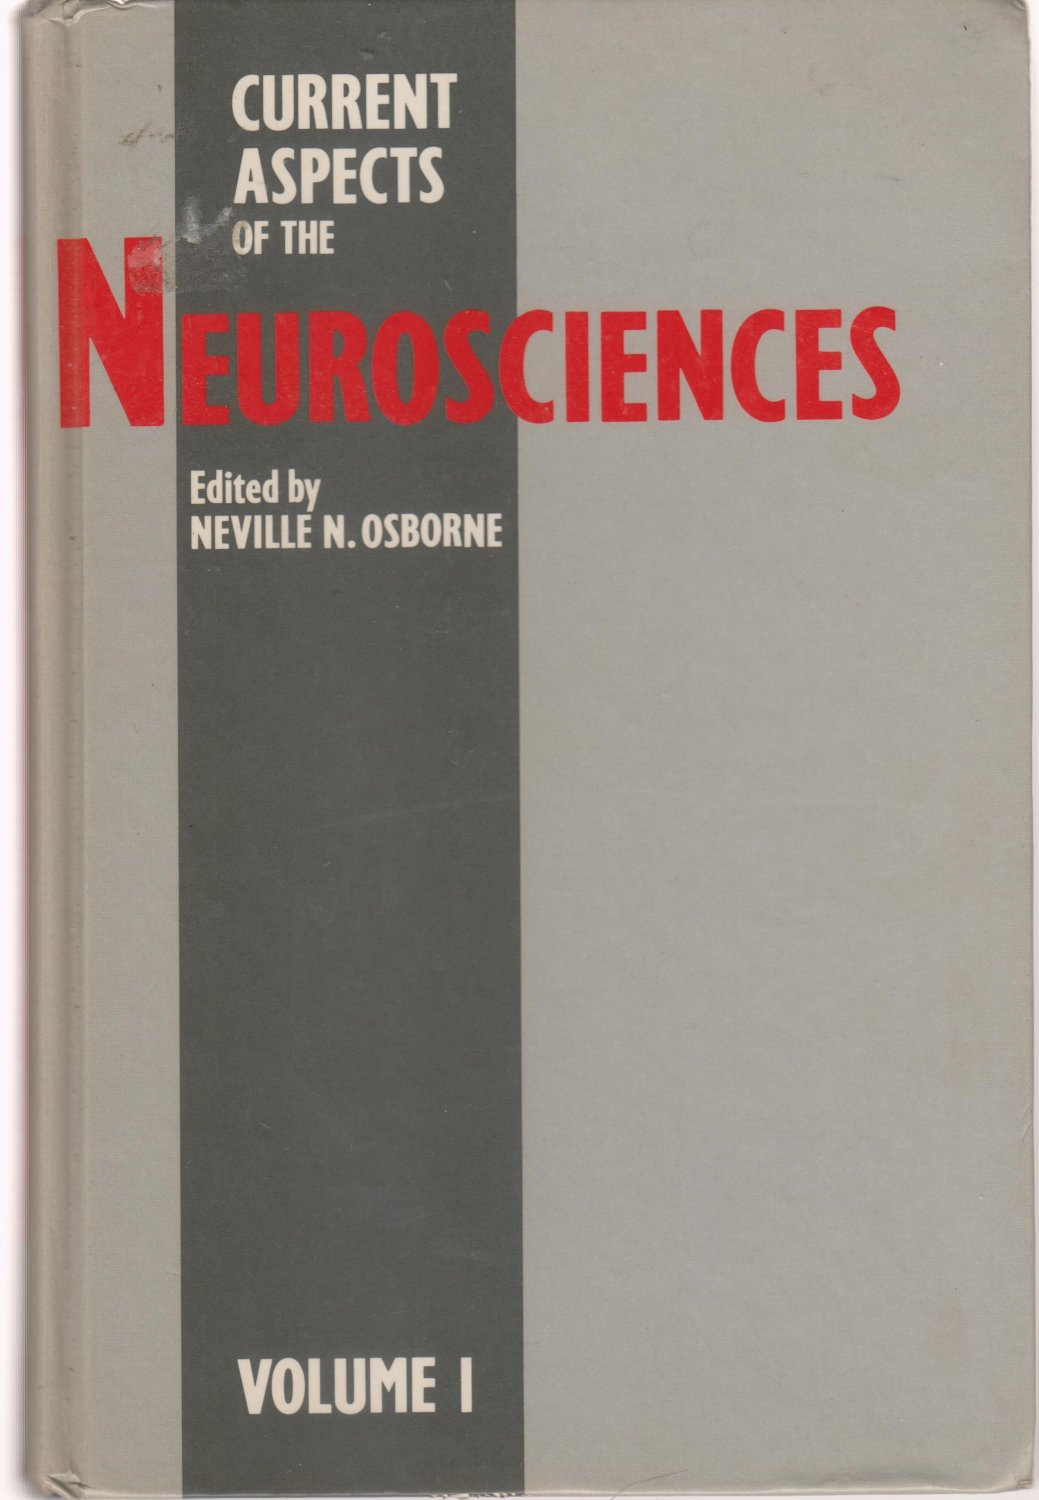 Current Aspects of the Neurosciences: v. 1